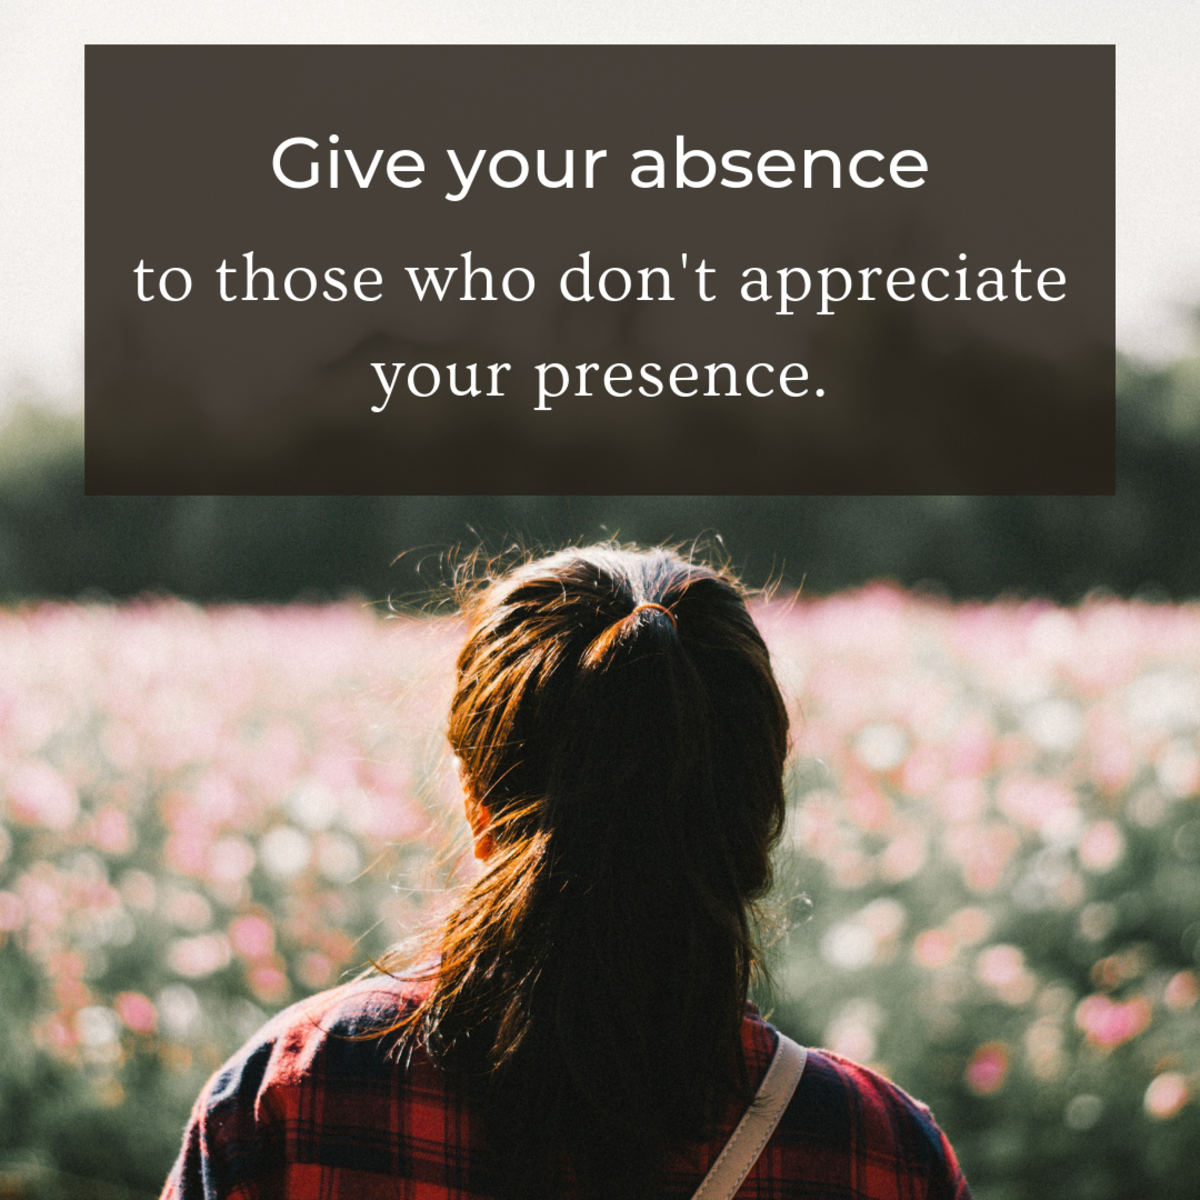 Give yourself space from those who do not appreciate you and use that alone time to practice self-care.